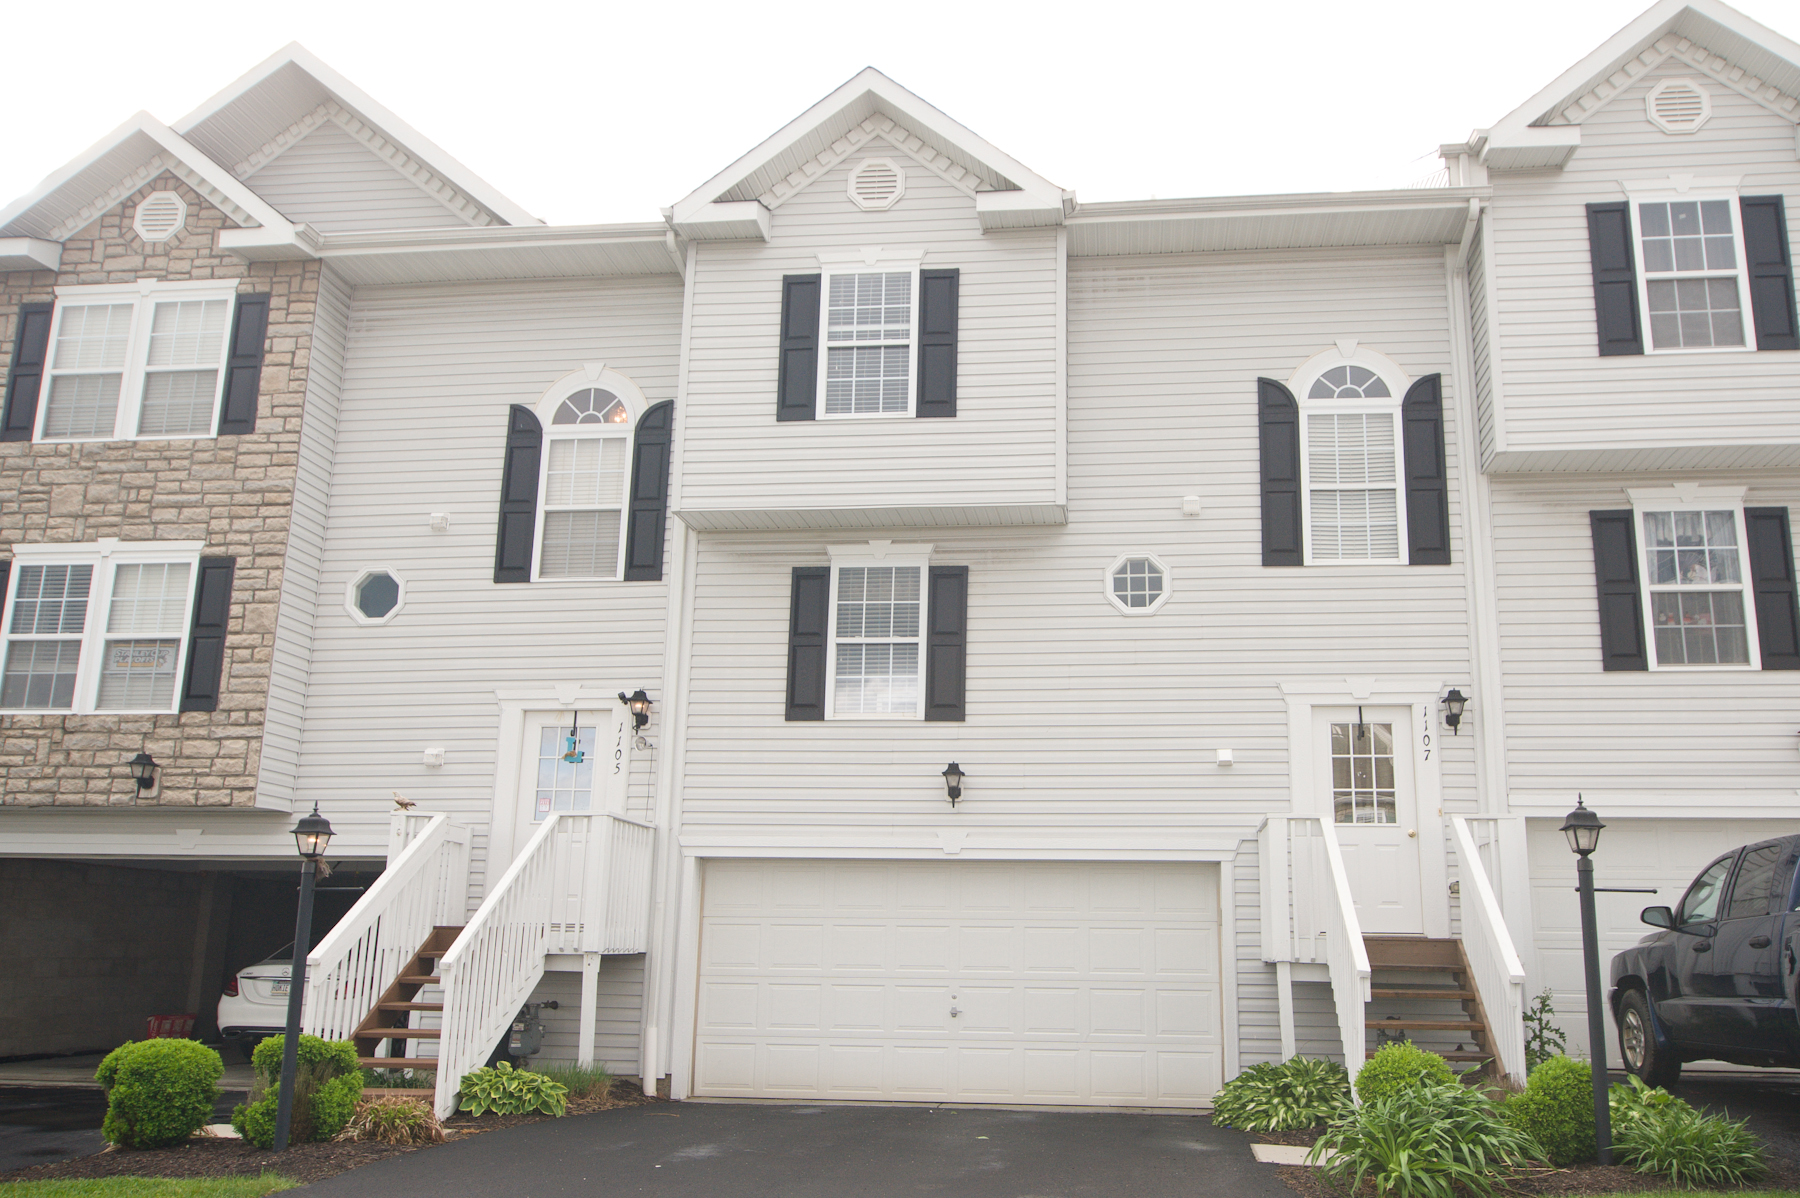 Townhouse for Sale at Townhome in Strabane Manor 1107 Arrowhead Drive Washington, Pennsylvania 15301 United States